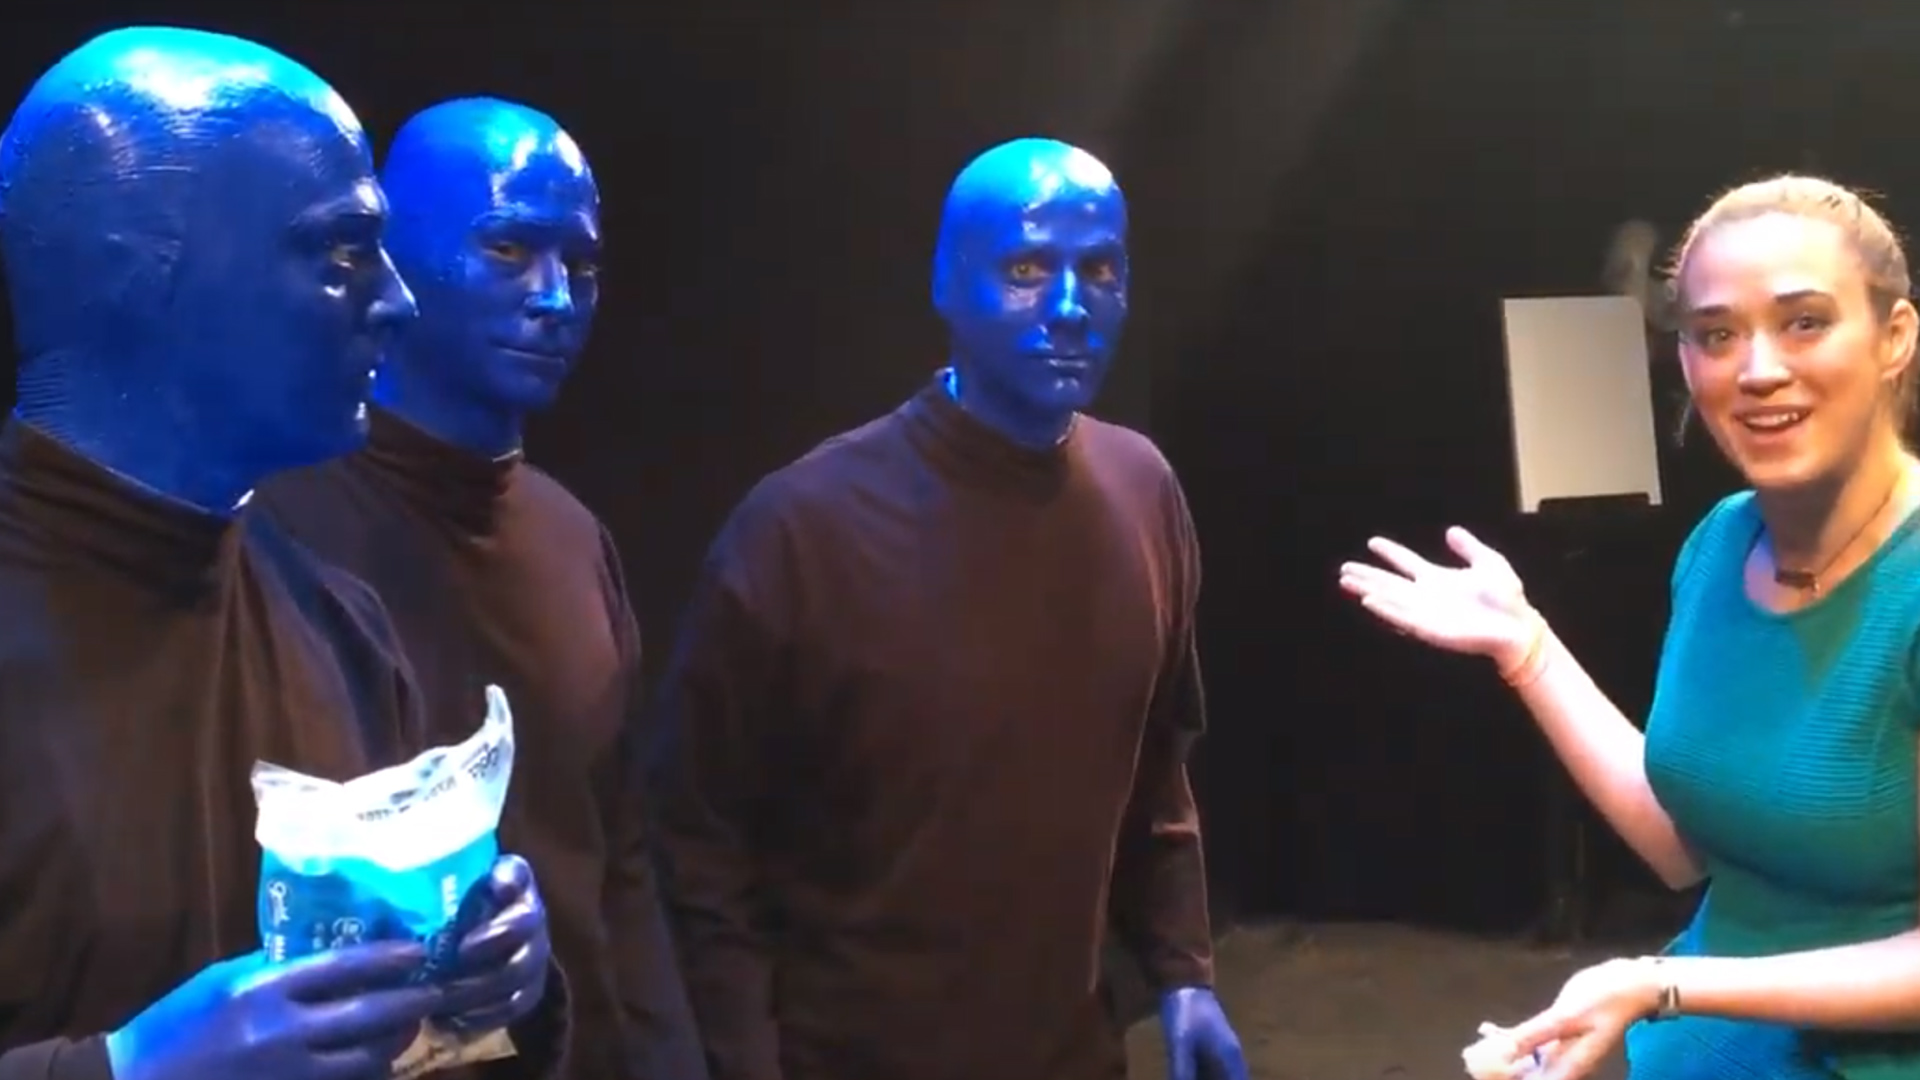 Video: Kayla Drescher with the Blue Man Group